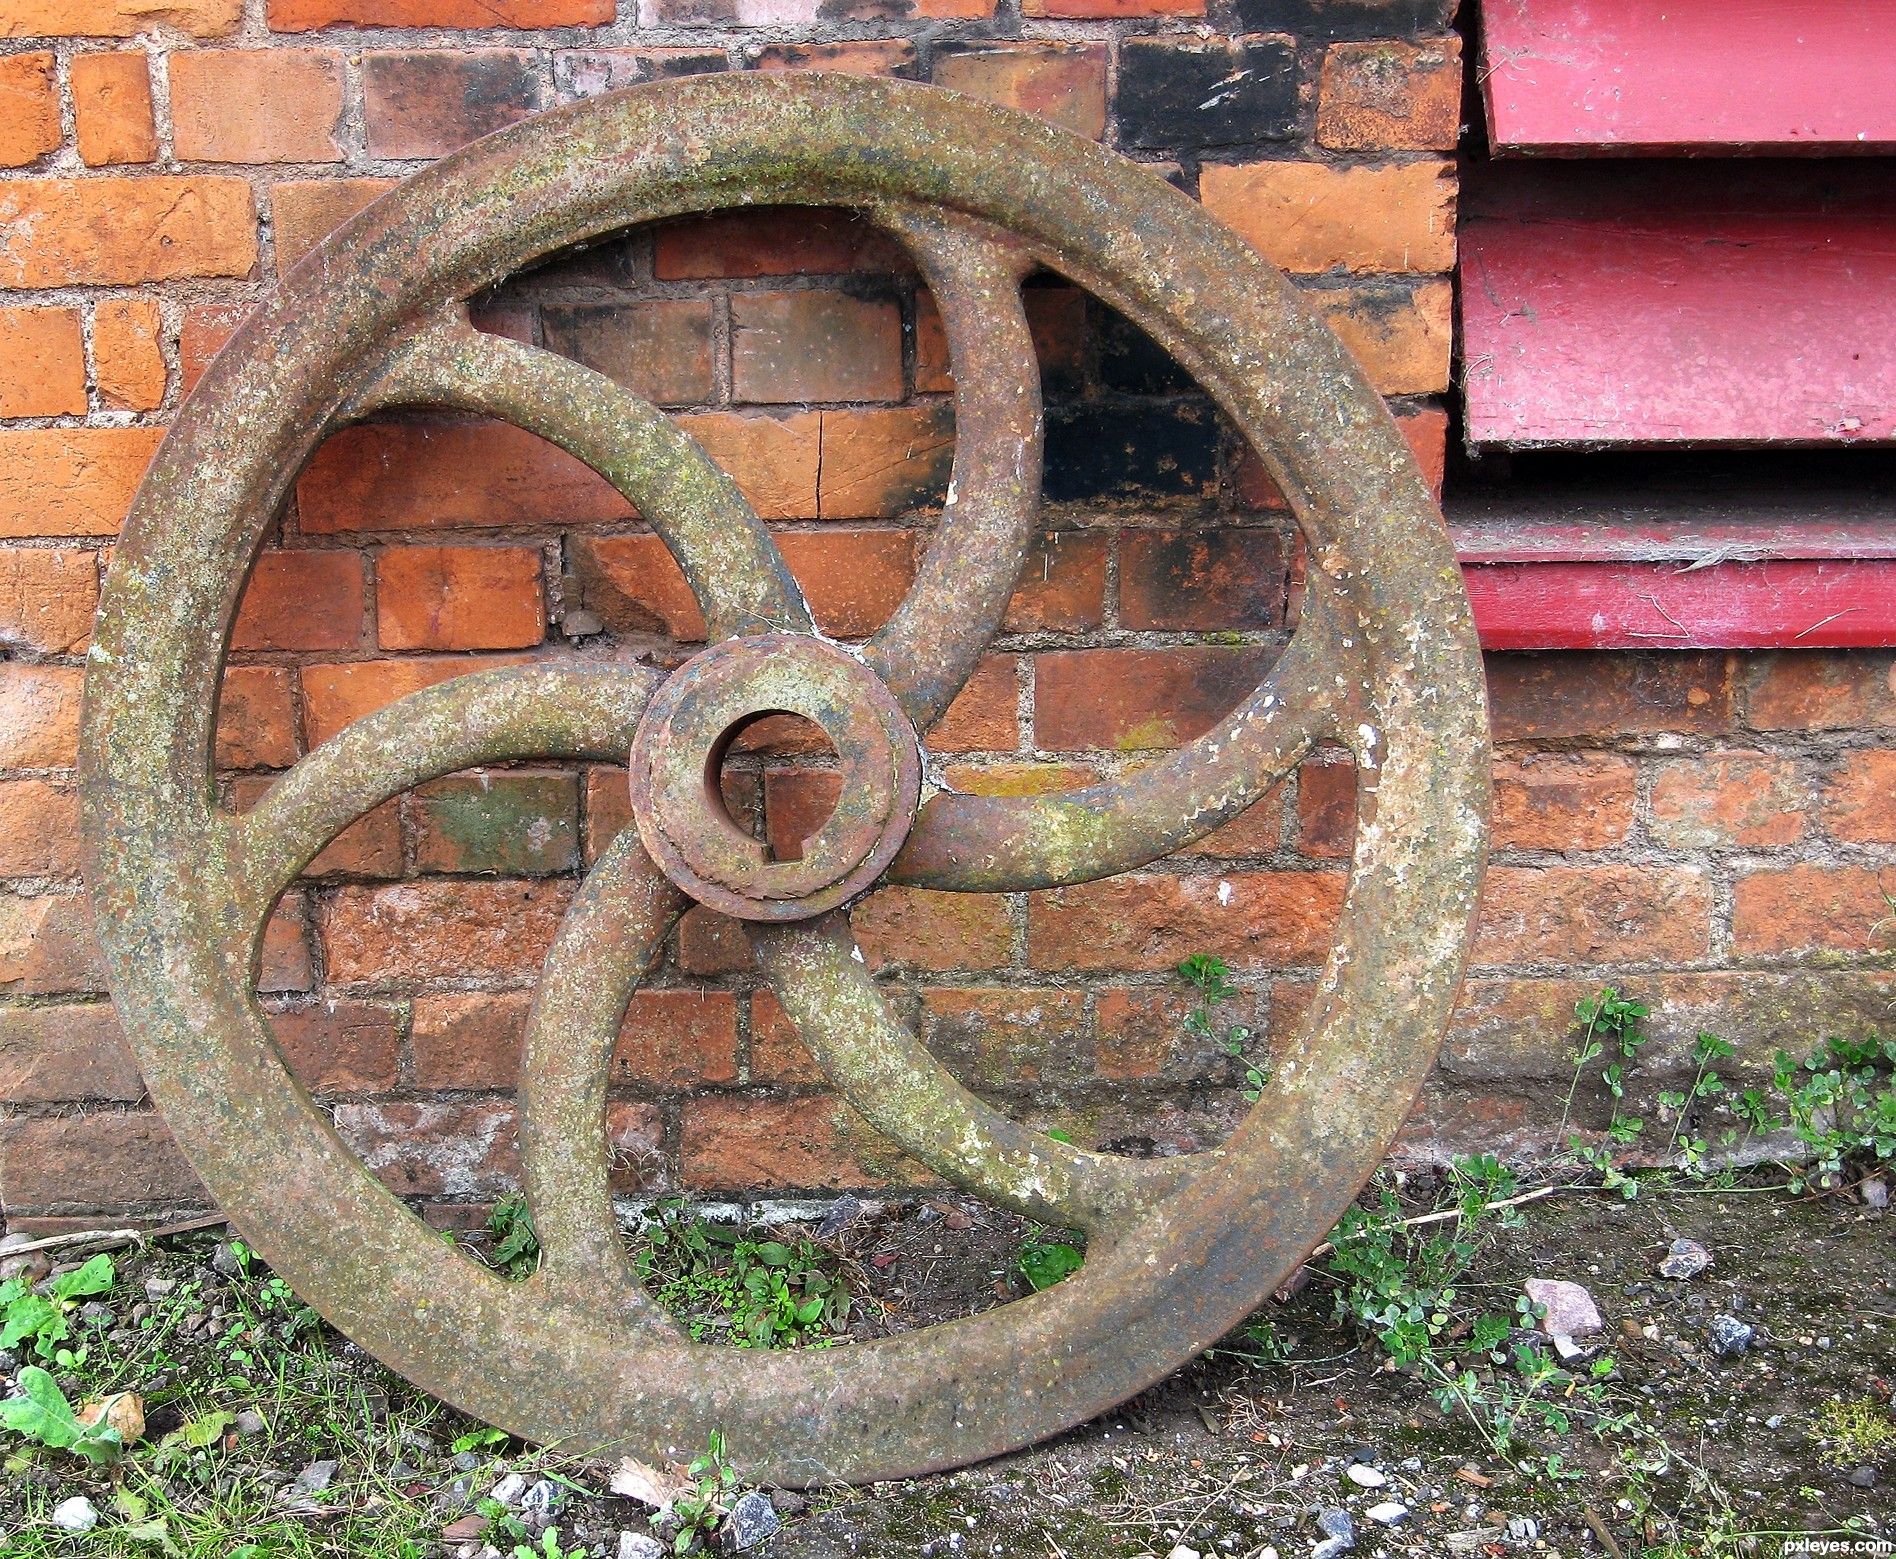 Old fly wheel picture by jeaniblog for perfect circles photography old fly wheel publicscrutiny Choice Image